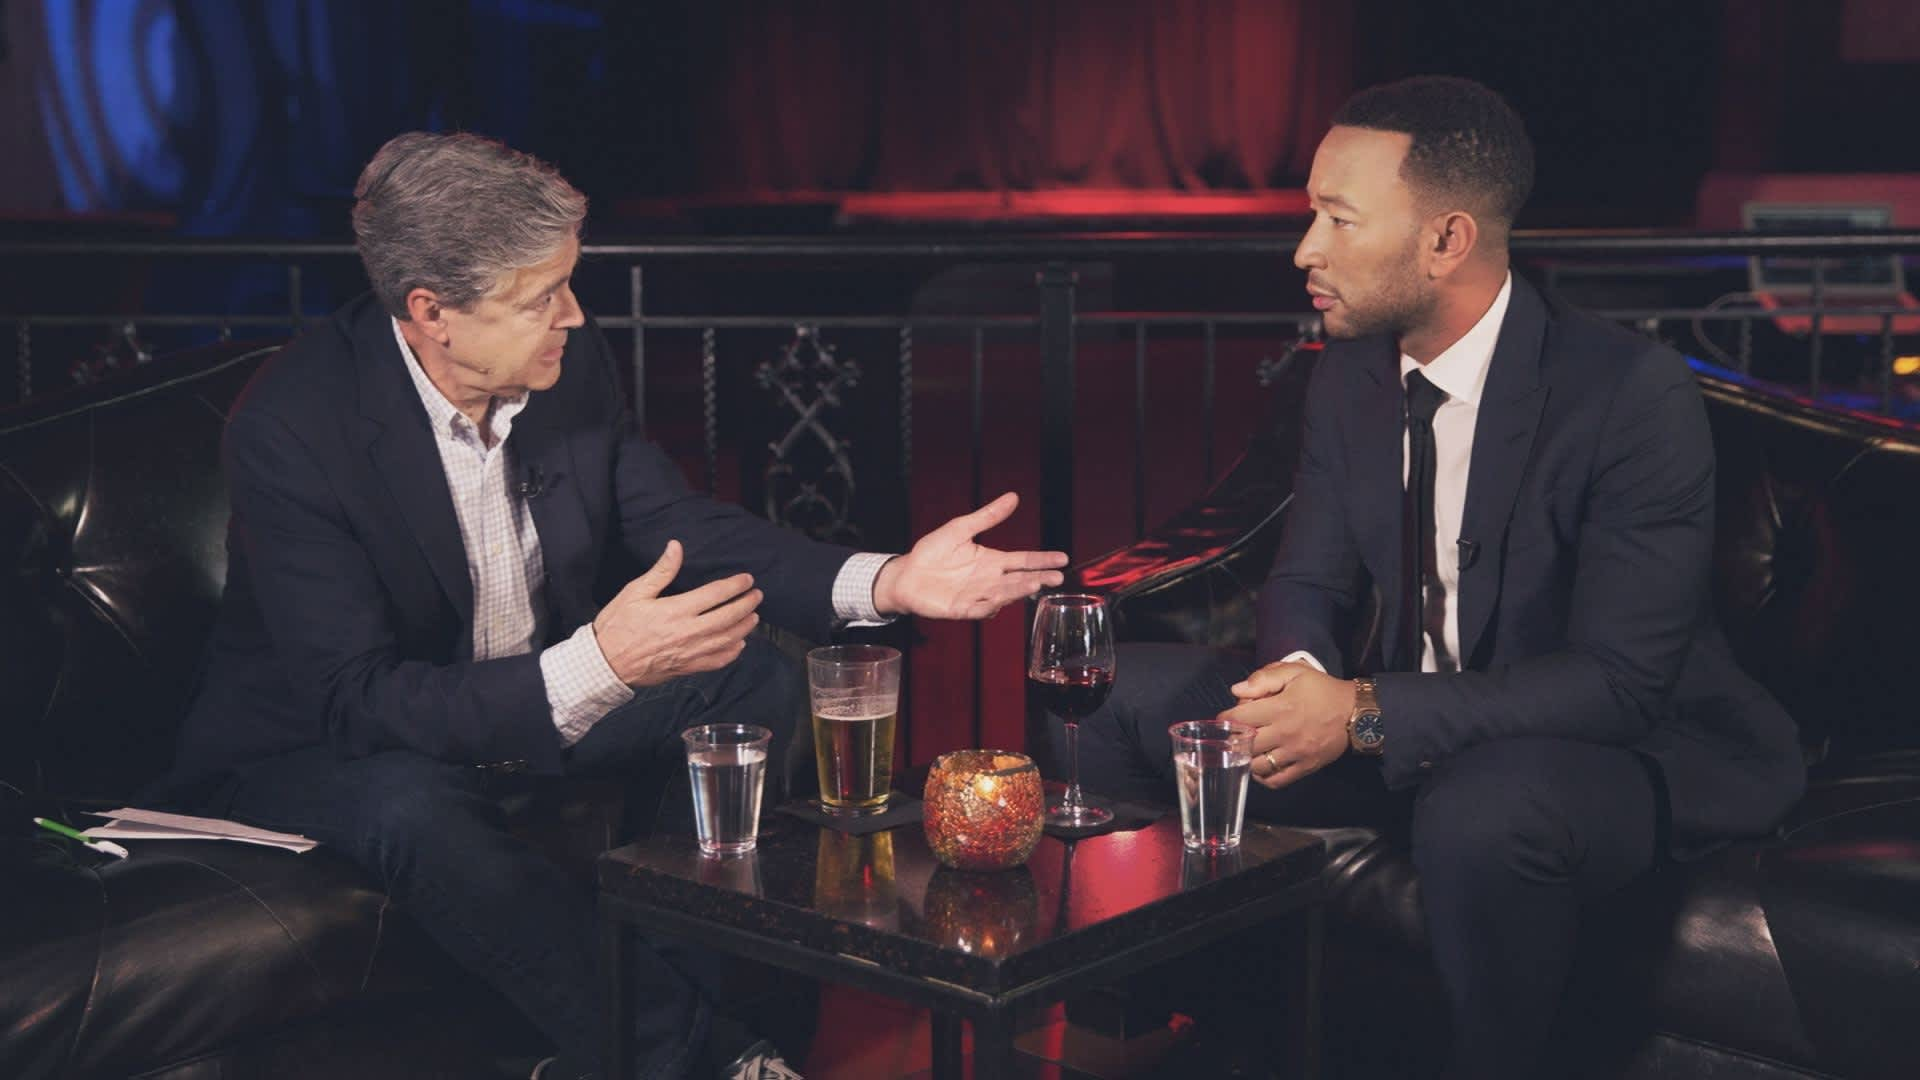 John Legend: Taking a political stand 'probably' alienates people, but 'it's worth the risk for me'